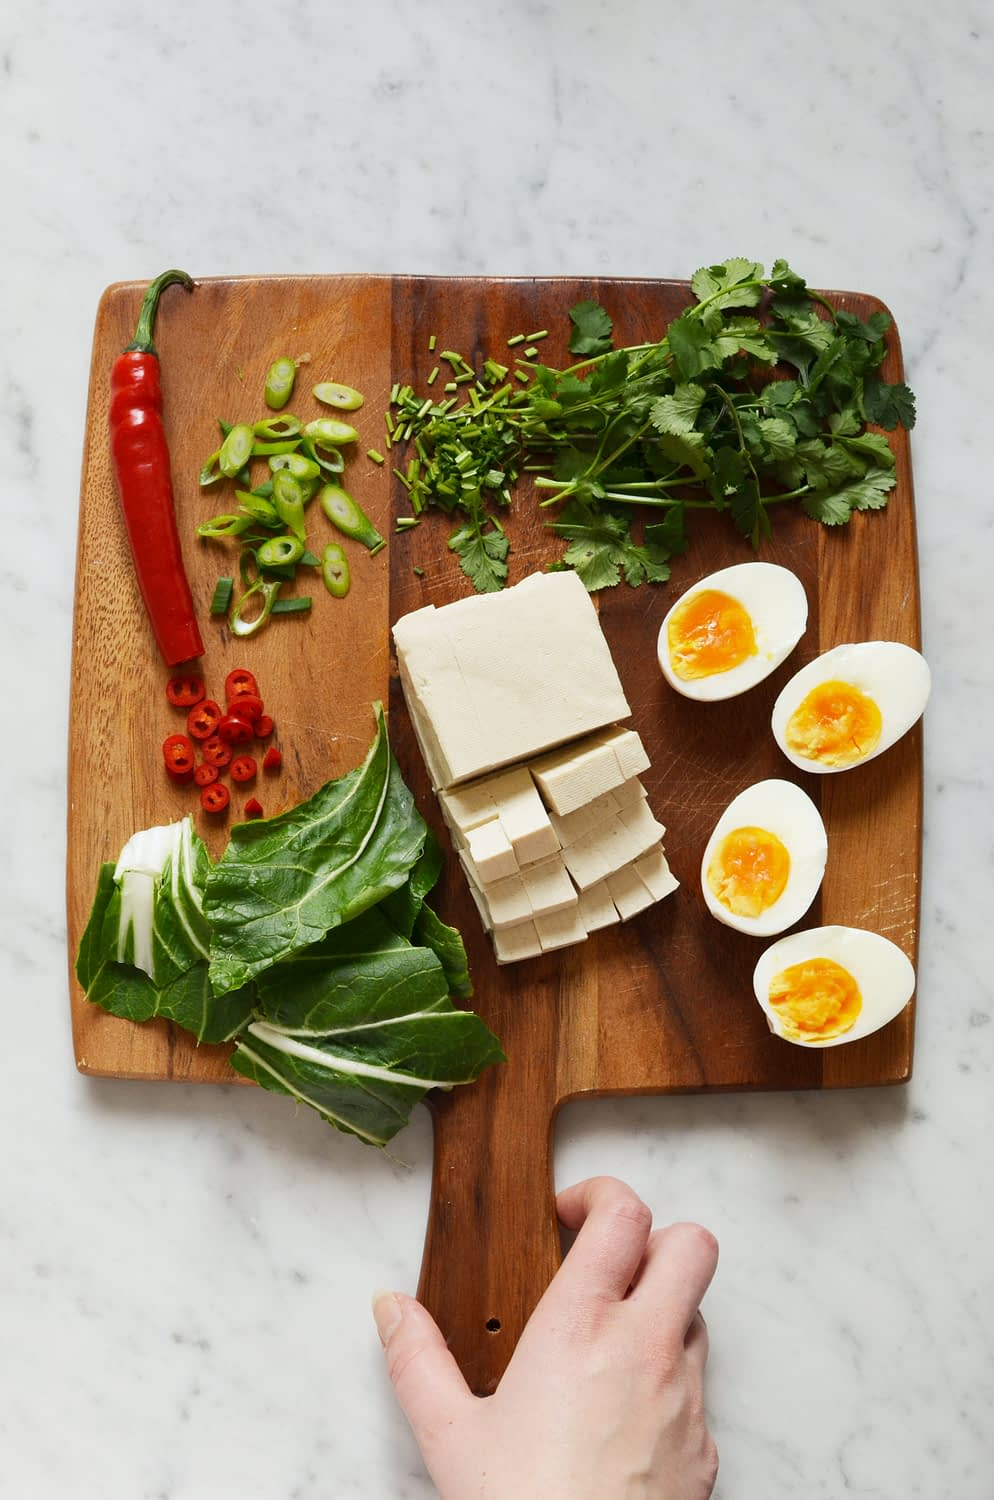 Recipe for spicy homemade ramen broth with all the toppings, including tofu, soft boiled eggs, fresh cilantro, red chili peppers, green onion, bok choy and buckwheat noodles. Gluten free!